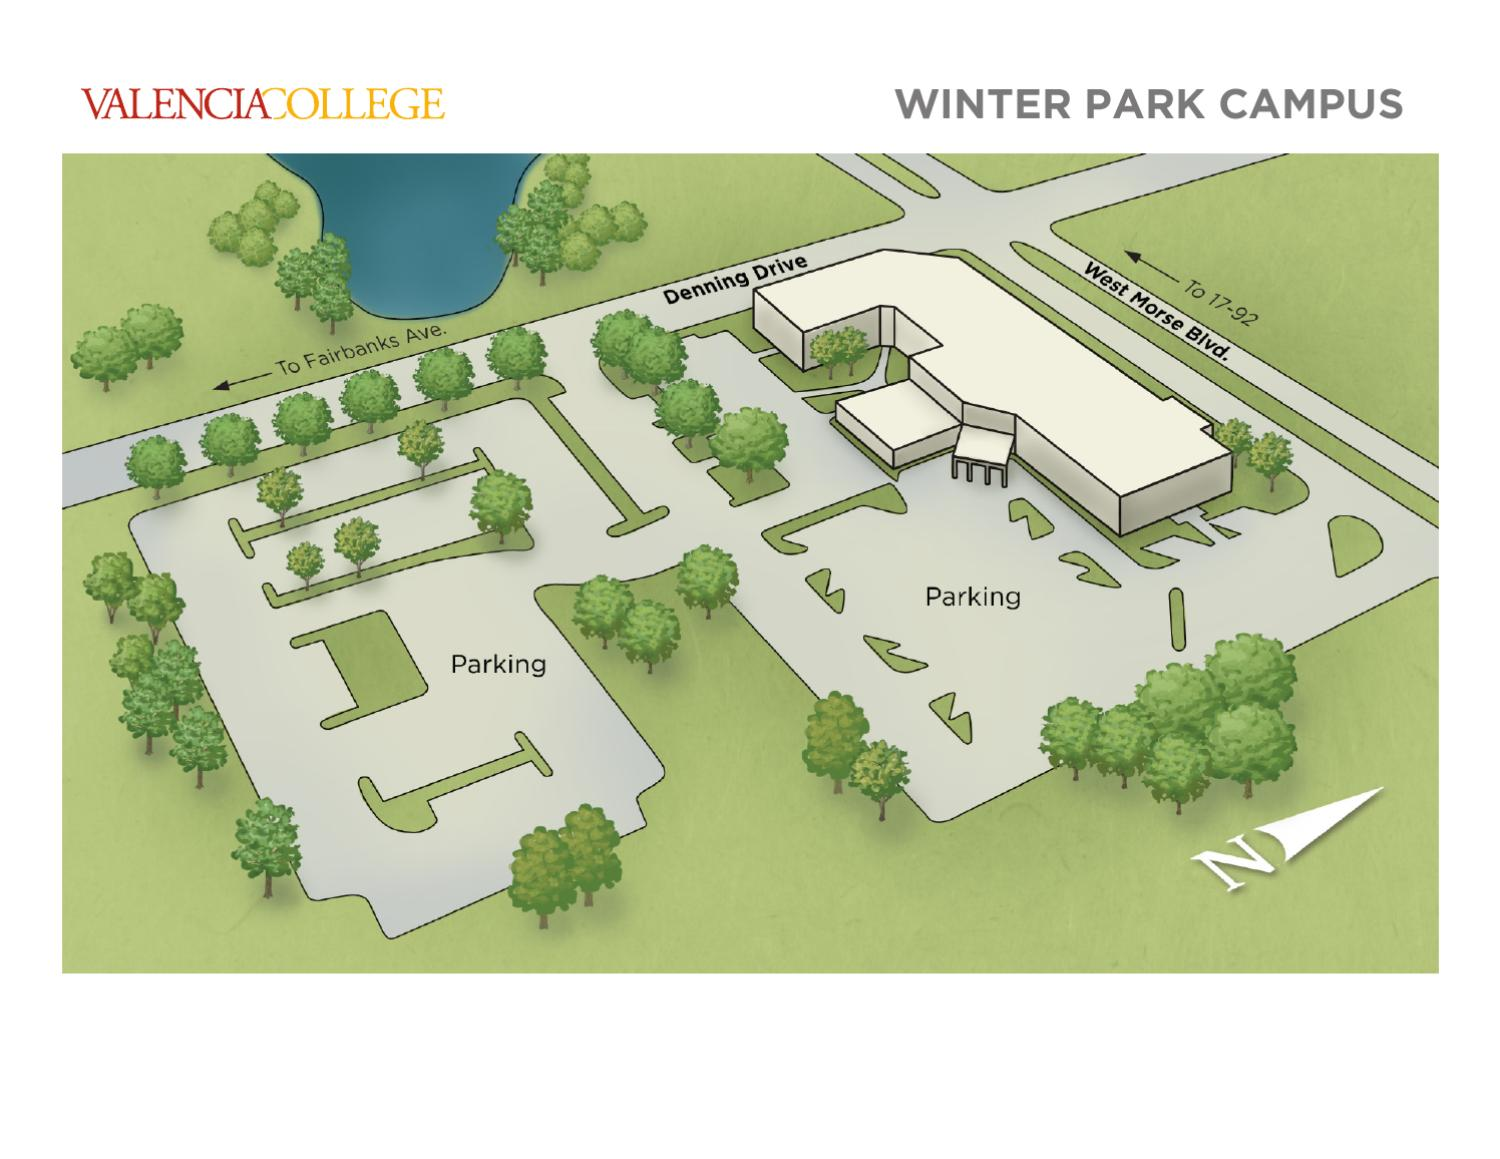 Valencia College Campus Map Winter Park by Valencia College   issuu